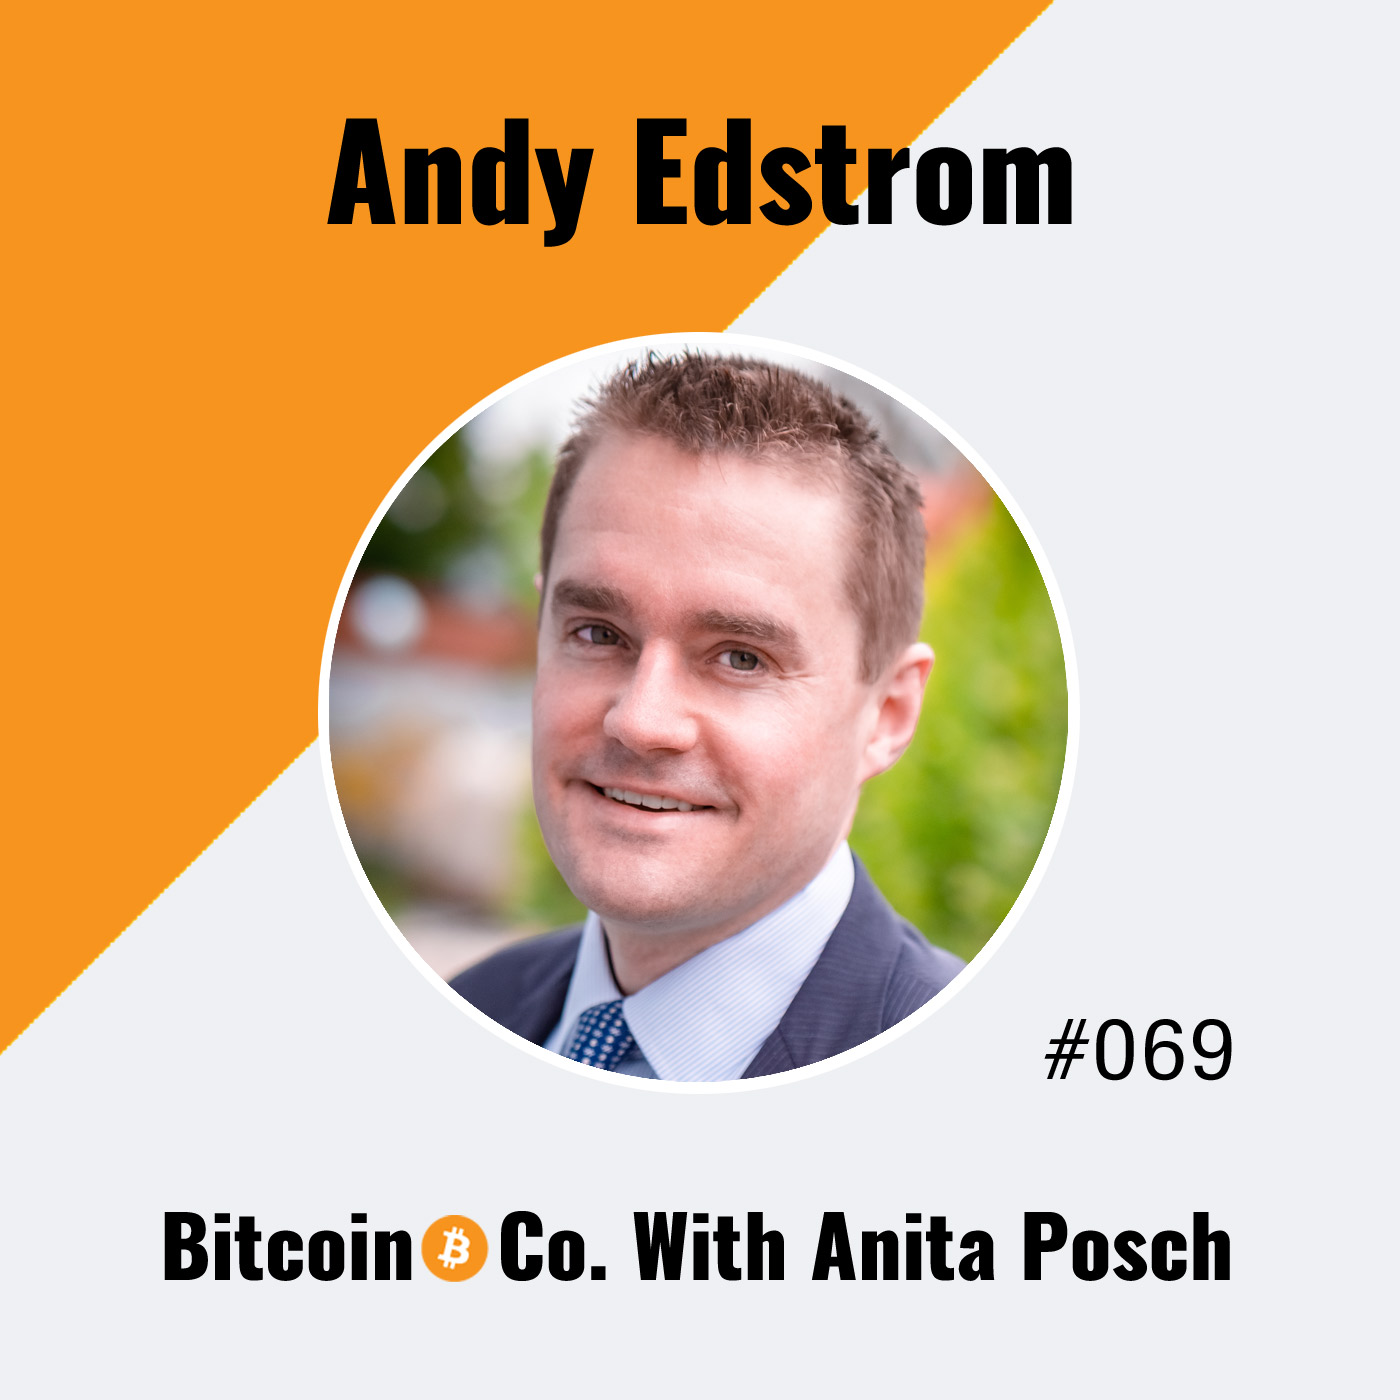 Andy Edstrom: Why Buy Bitcoin? Investing Today in the Money of Tomorrow